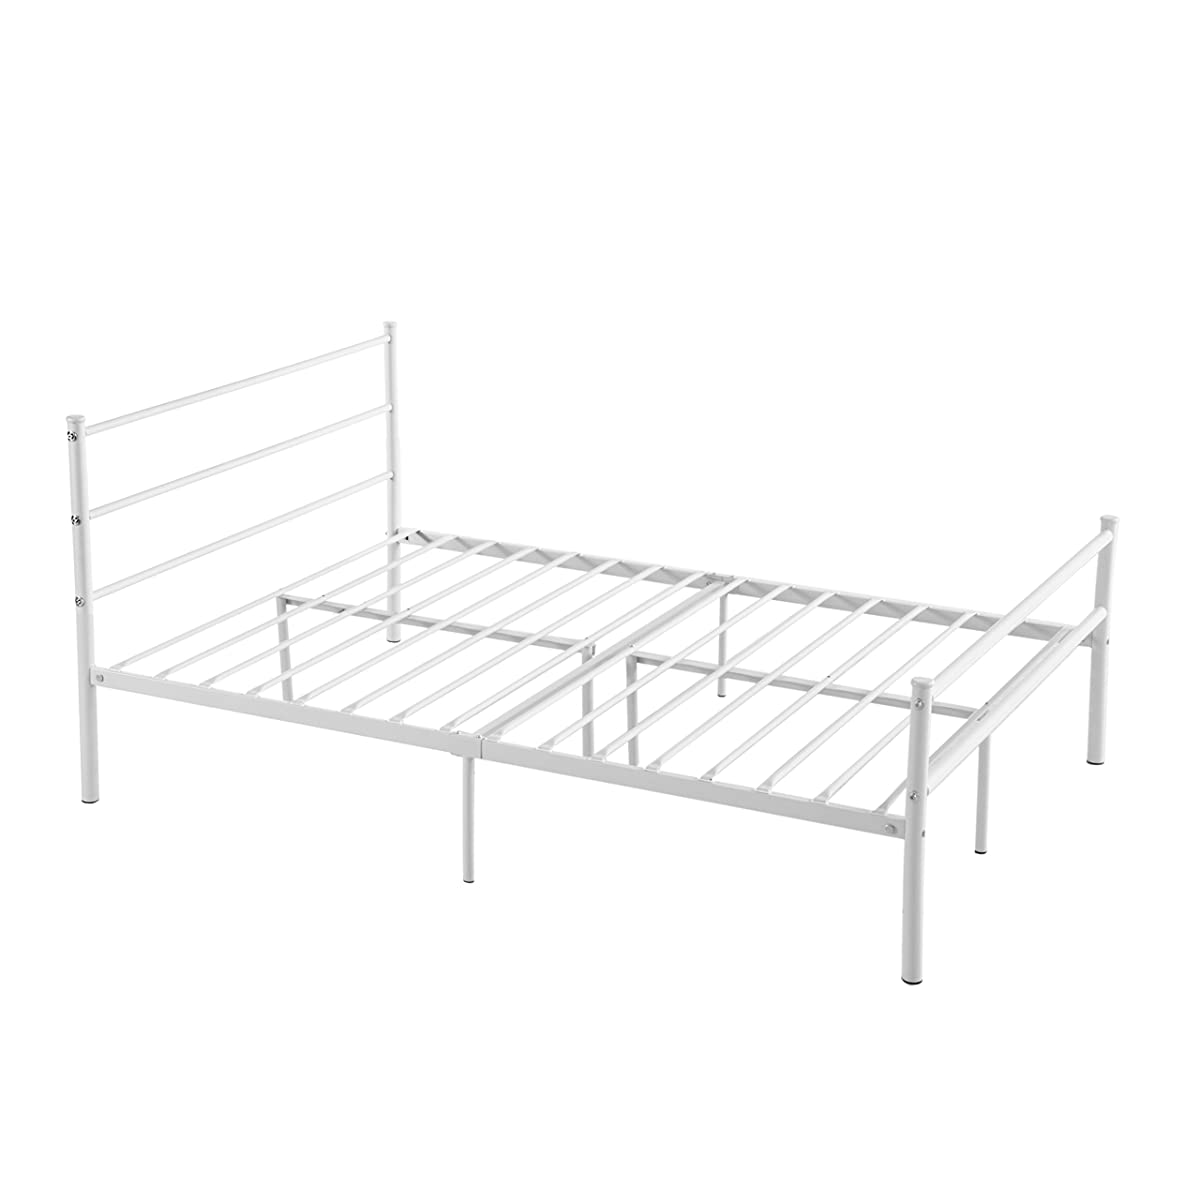 Metal Bed Frame Full Size, GreenForest 10 Legs Mattress Foundation Two Headboards White Platform Bed Frame Box Spring Replacement